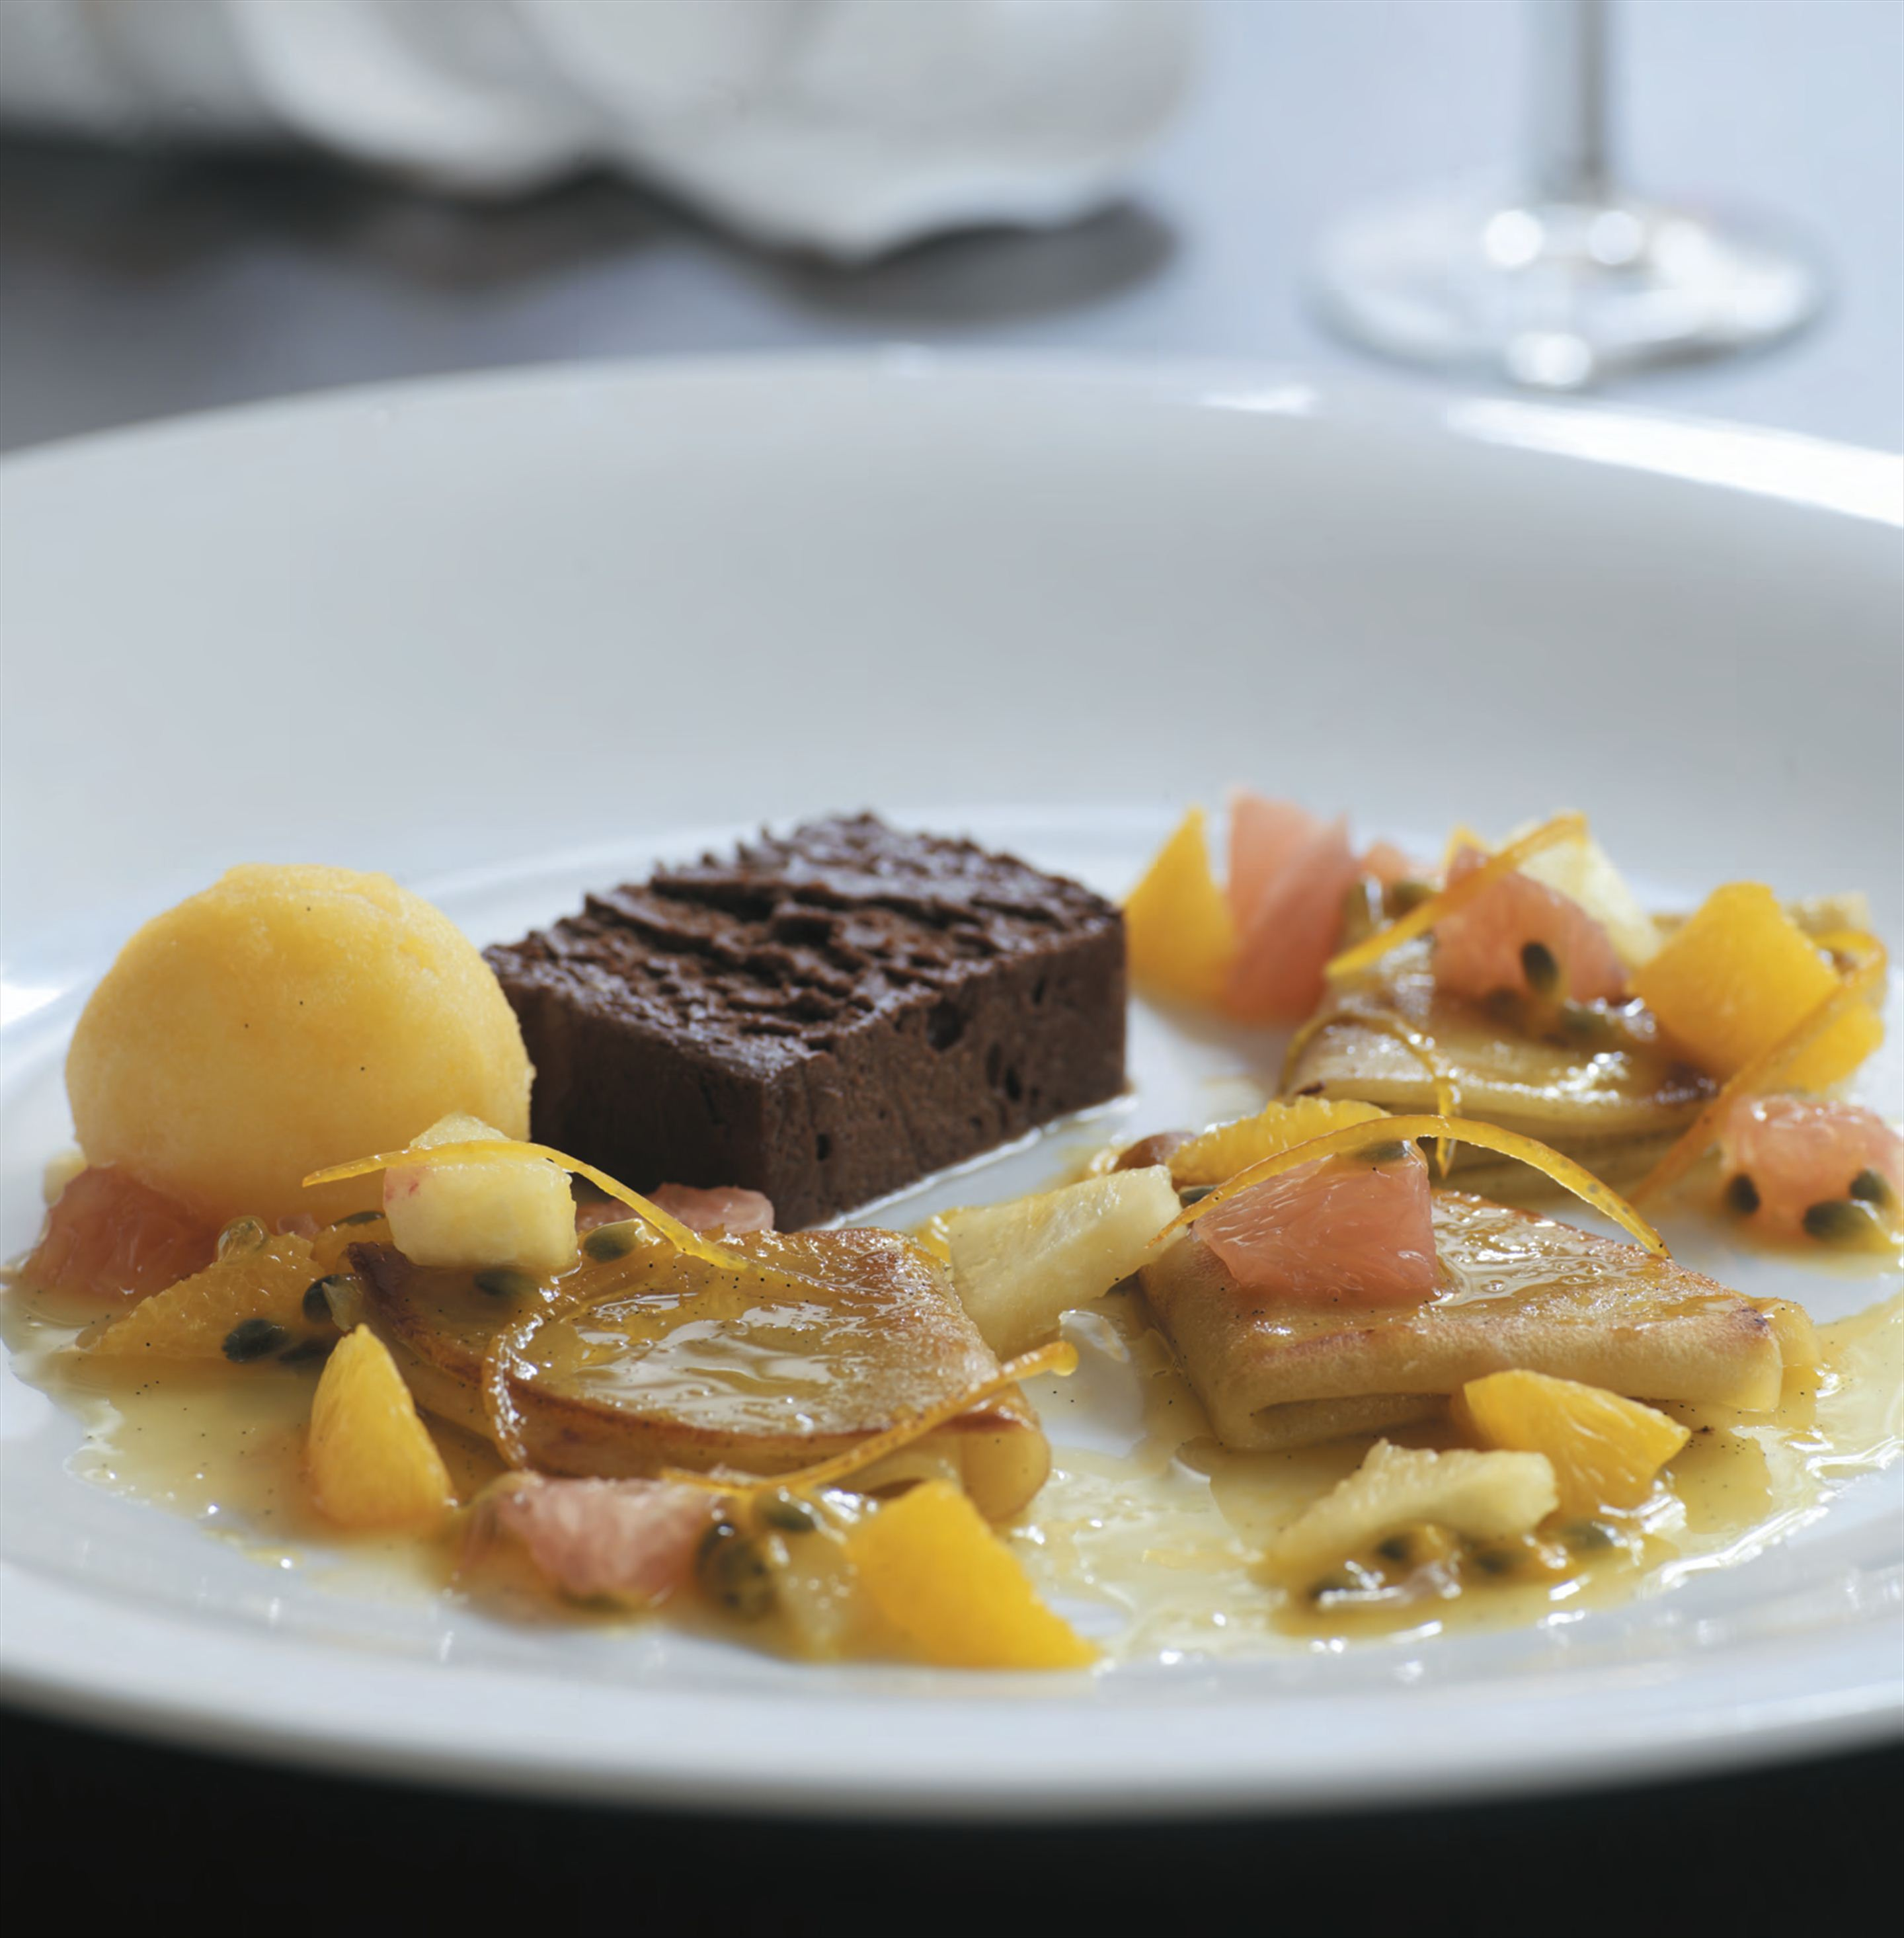 Chocolate terrine with warm passionfruit crêpes suzette and citrus salad